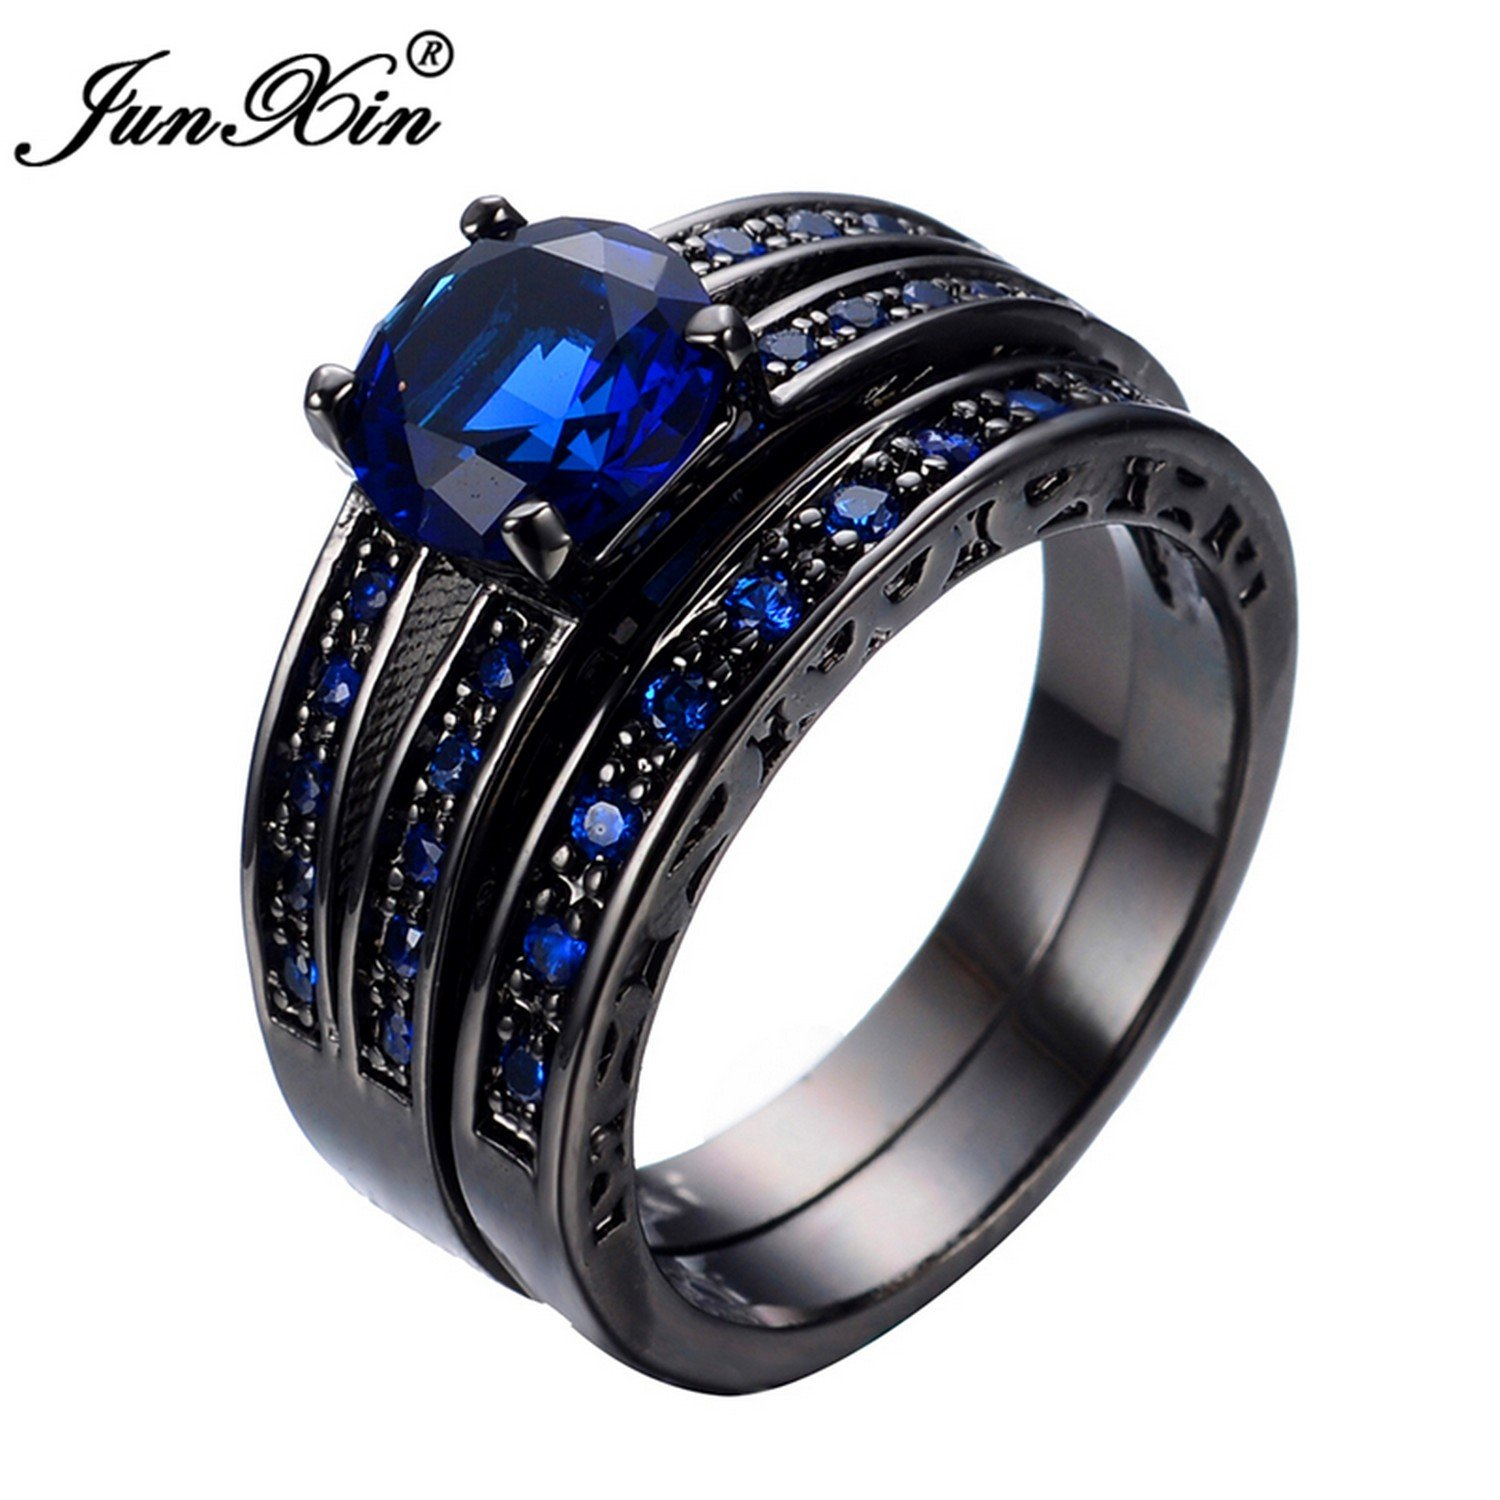 Slyq Jewelry Black gold Filled bluee Jewelry Rings for Women and Men Wedding Engagement Ring Set